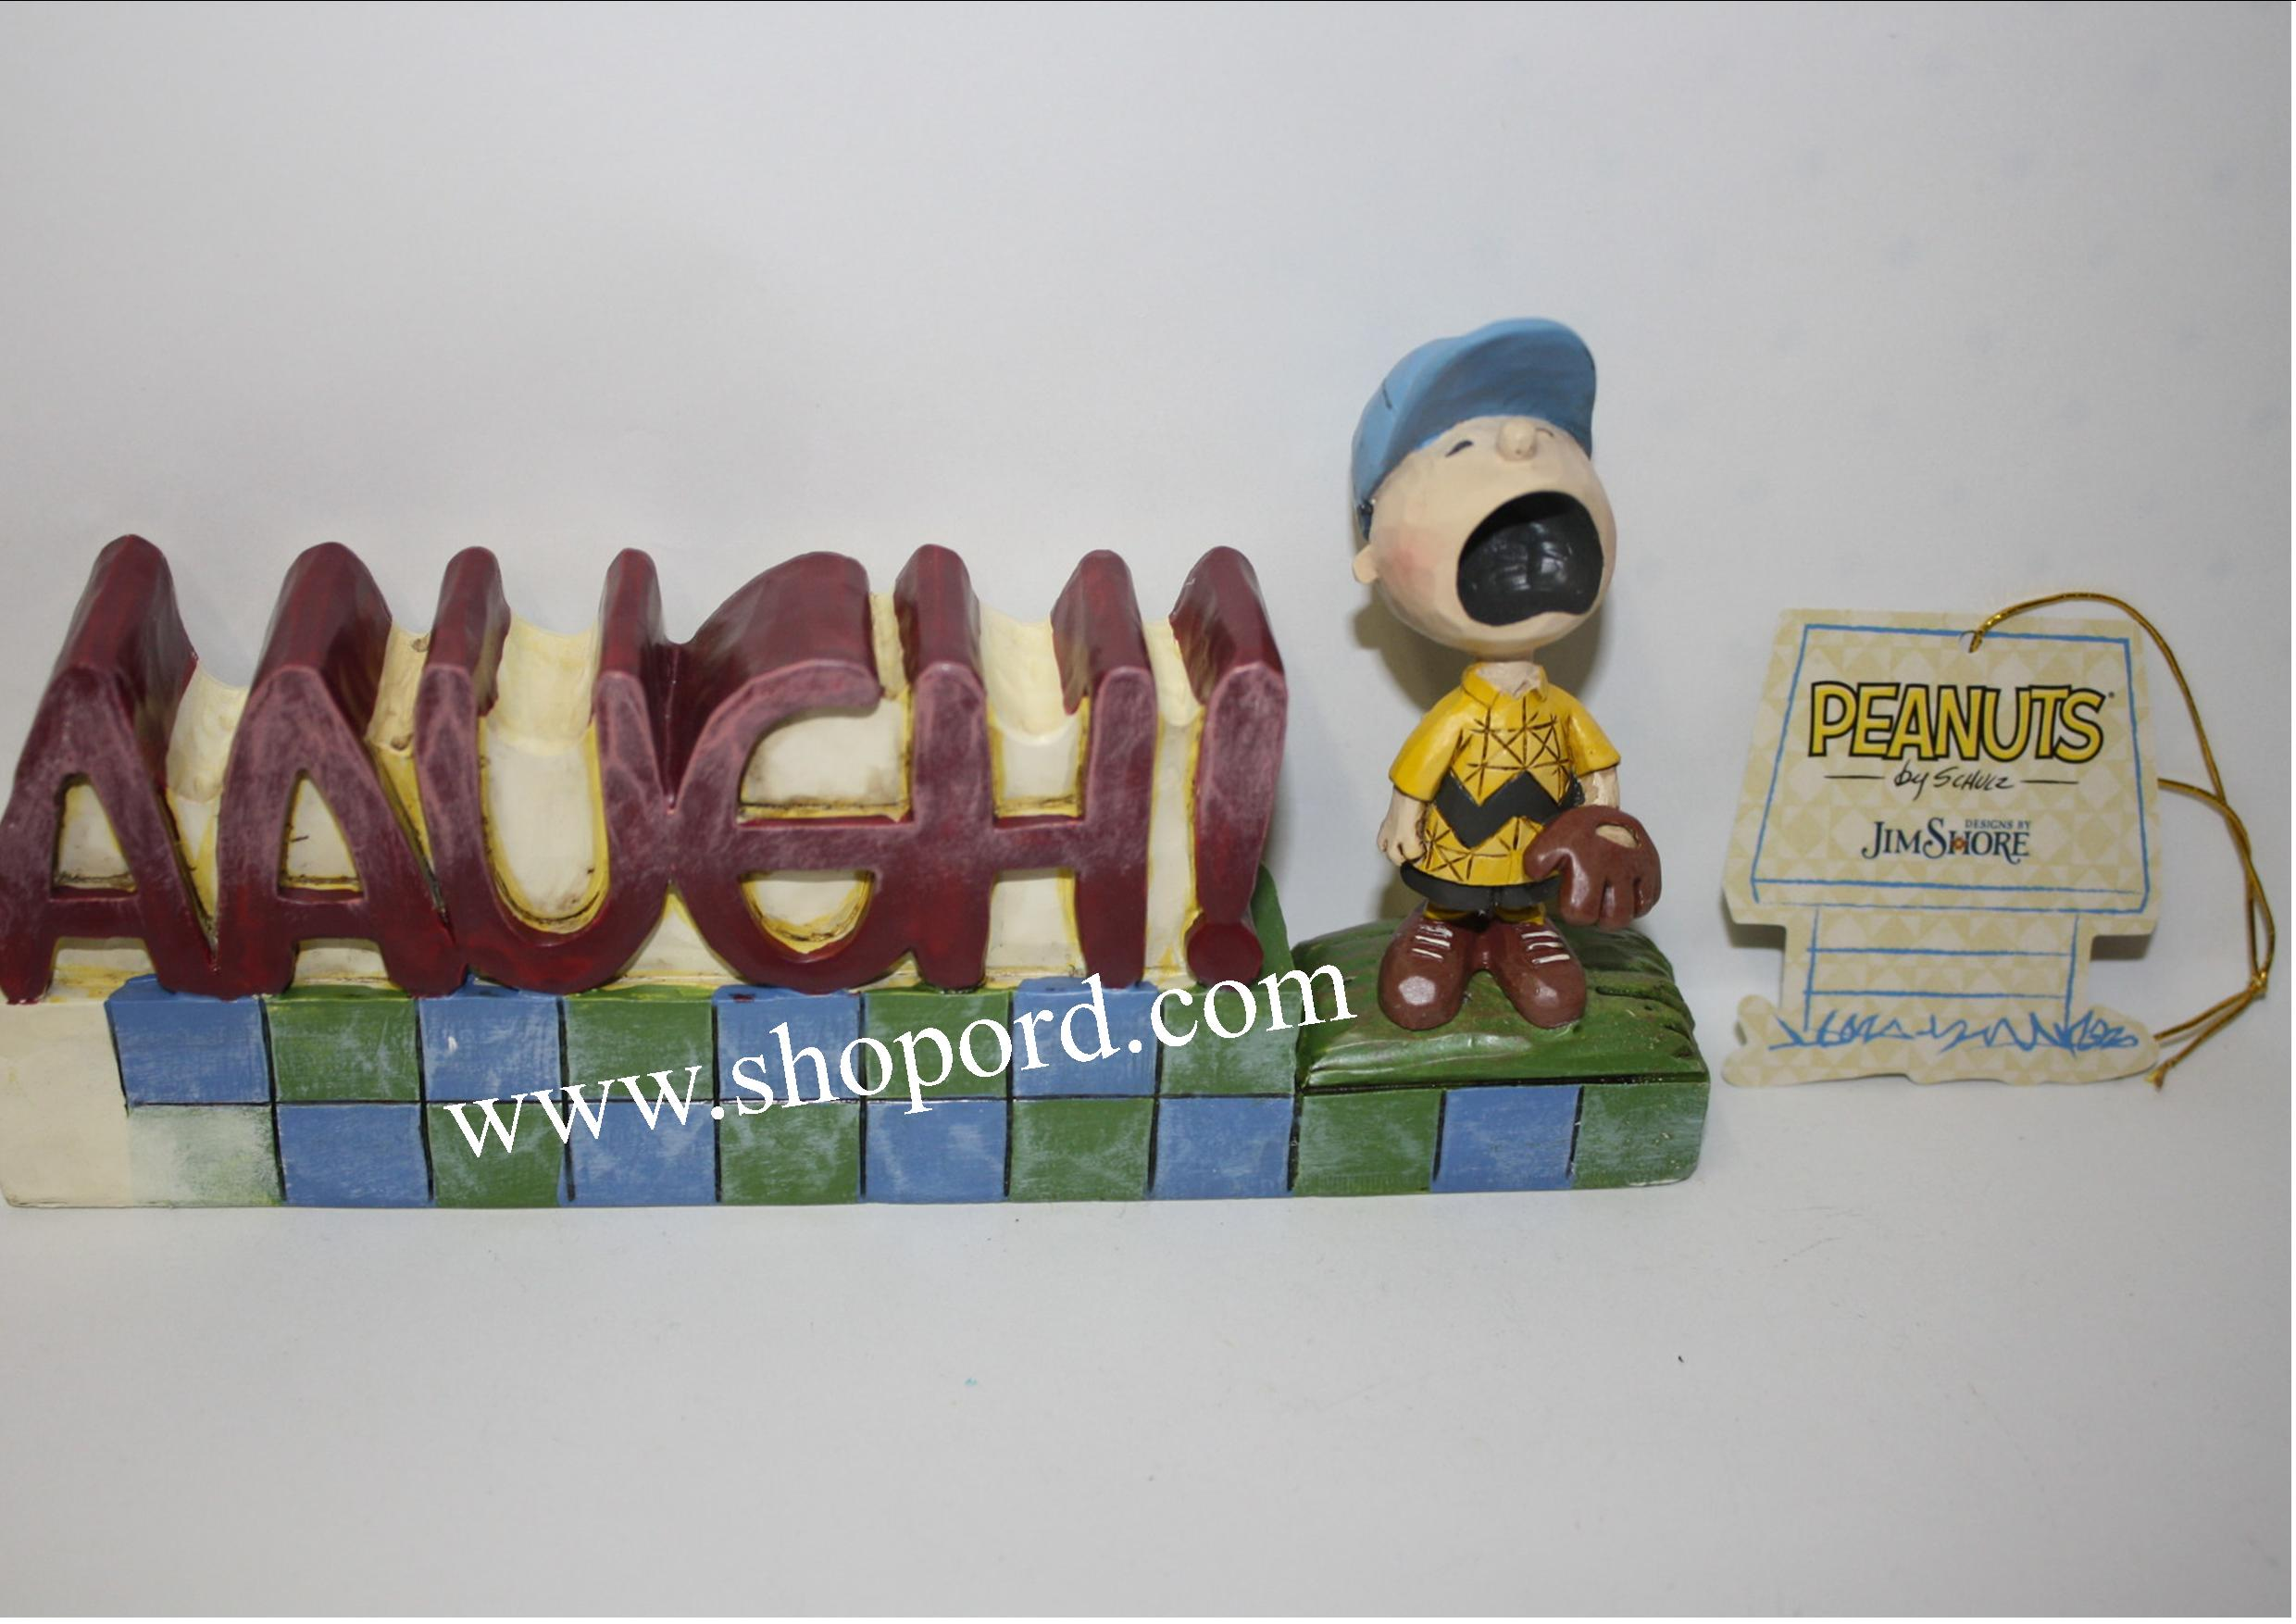 Jim Shore Peanuts AAUGH Charlie Brown Word Plaque Figurine 4042388